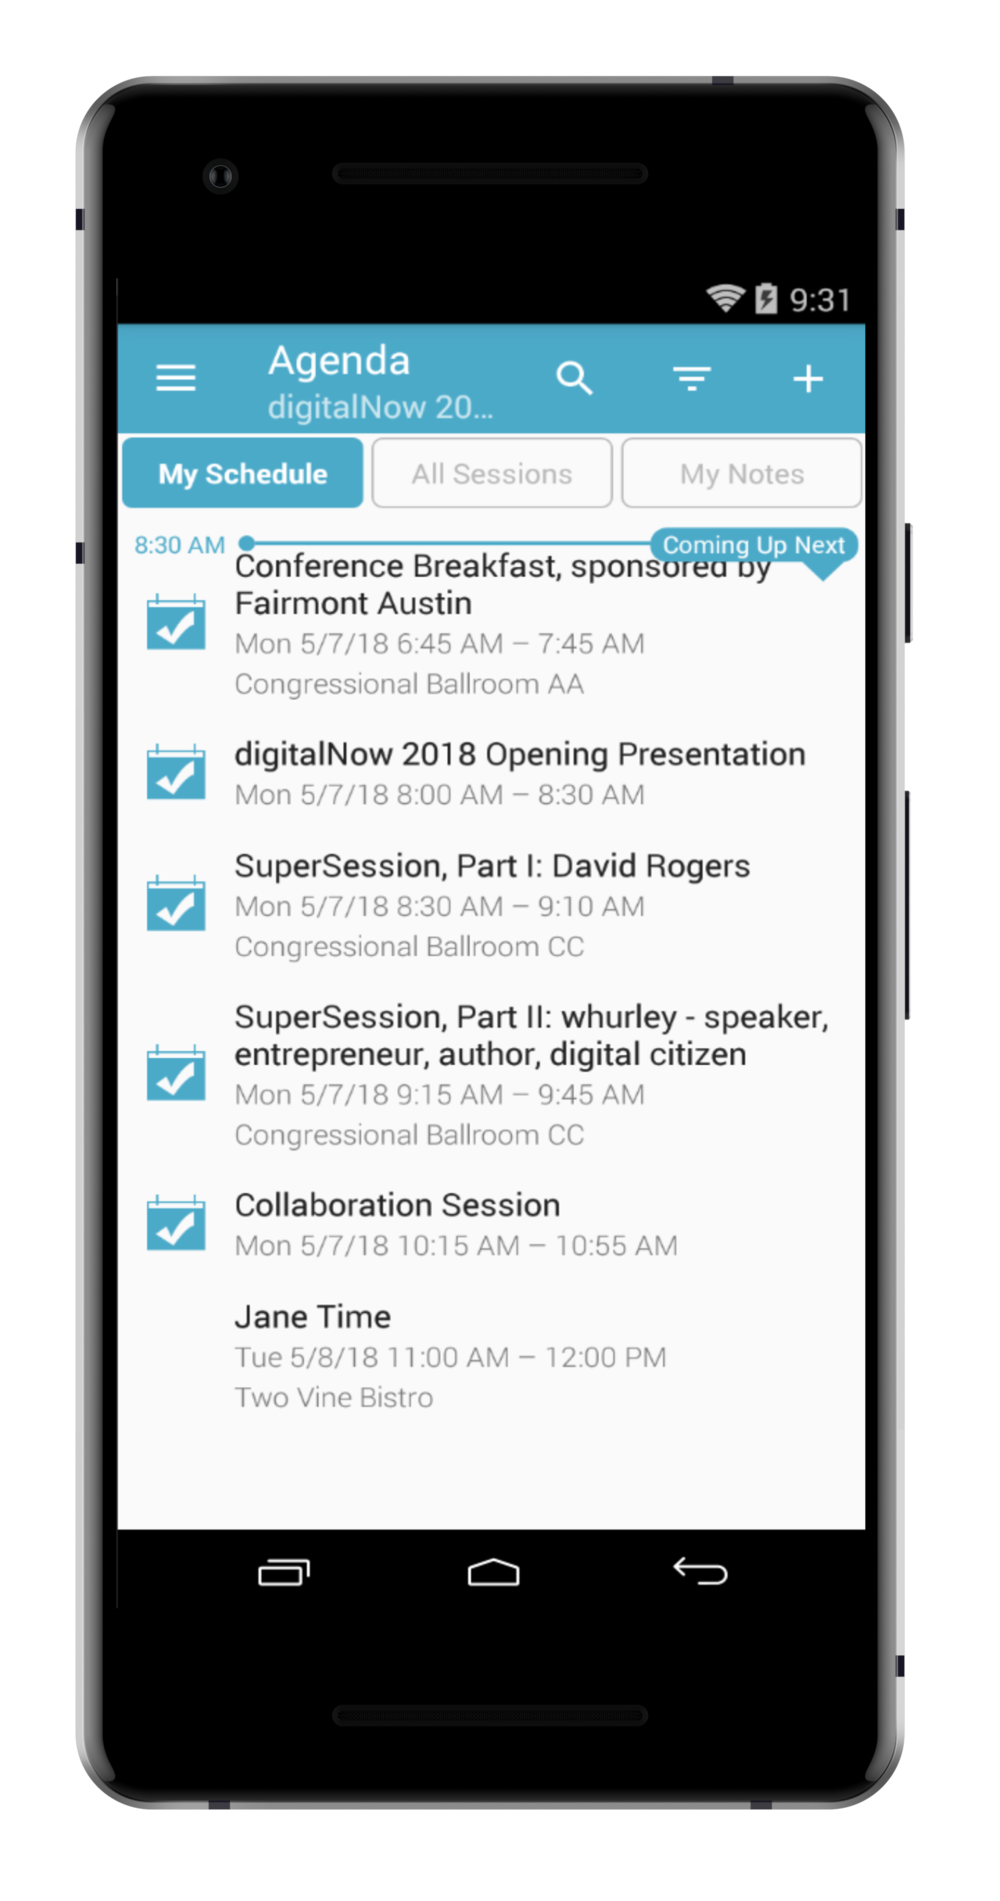 step 1. - FROM THE MY SCHEDULE TAB WITHIN THE AGENDA, FIND AN EVENT YOU WANT TO MAKE NOTES ON AND TAP IT'S TITLE TO SELECT IT.